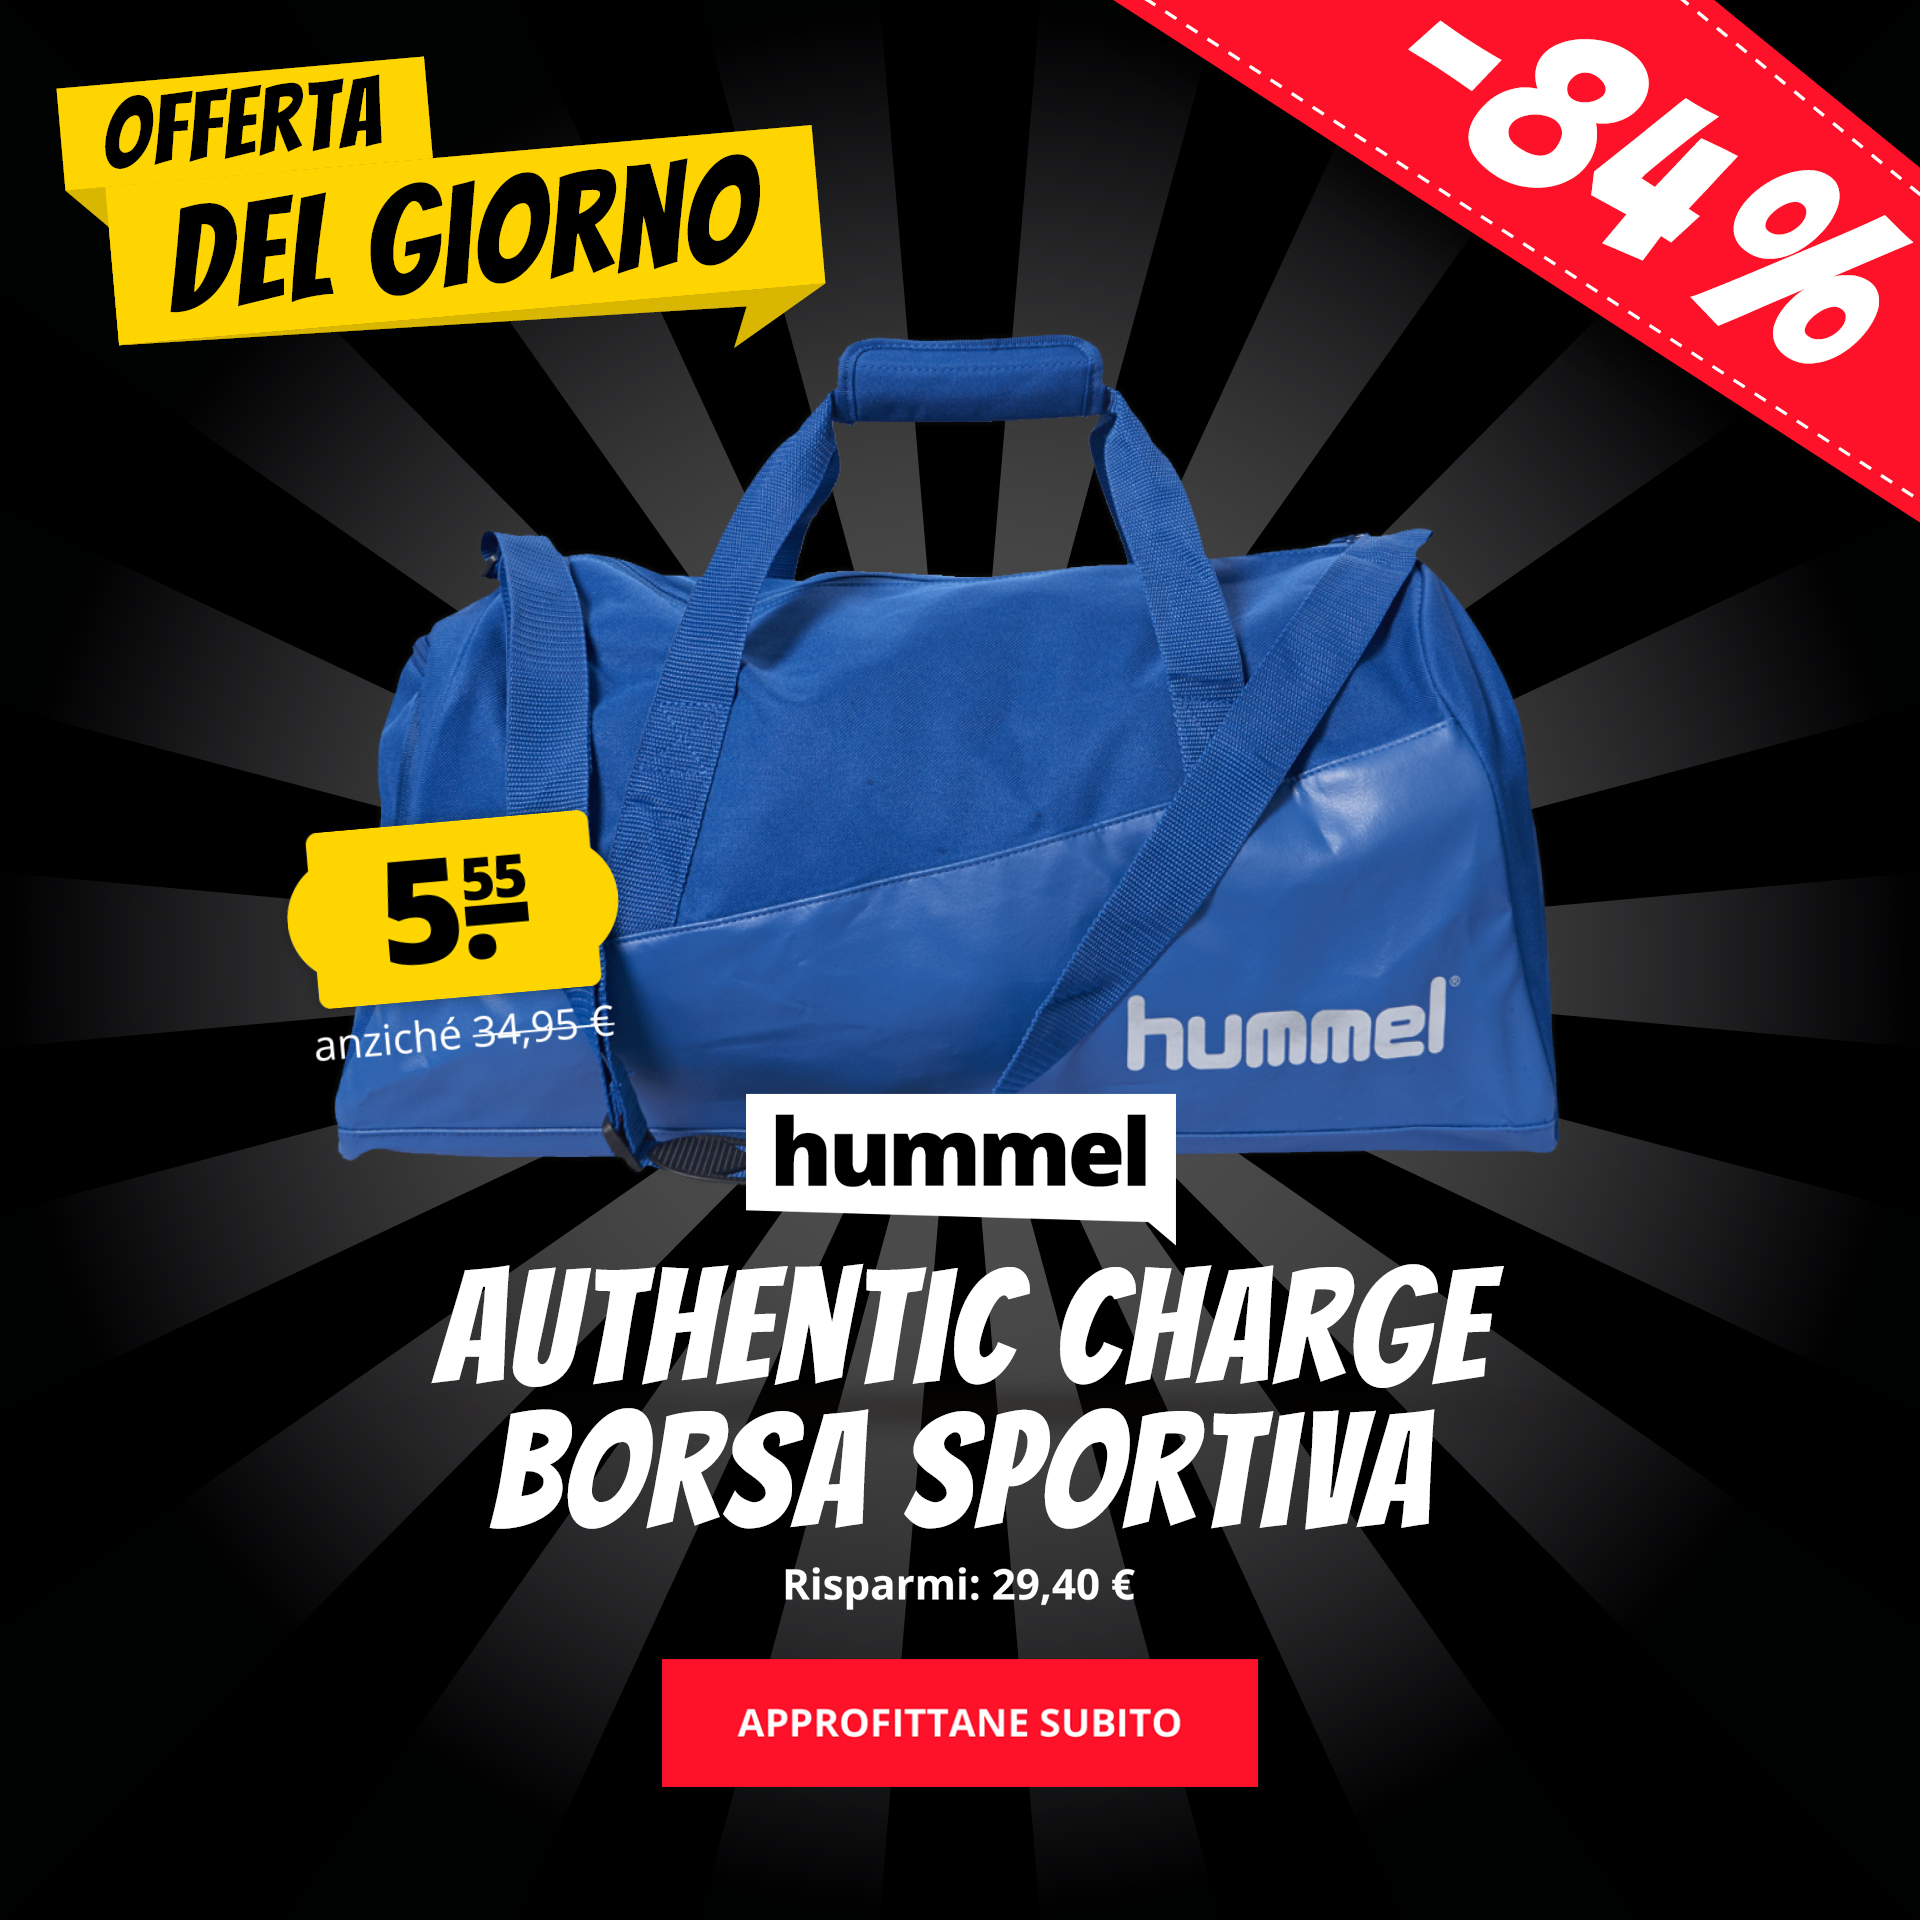 hummel Authentic Charge Borsa sportiva solo 5,55 €